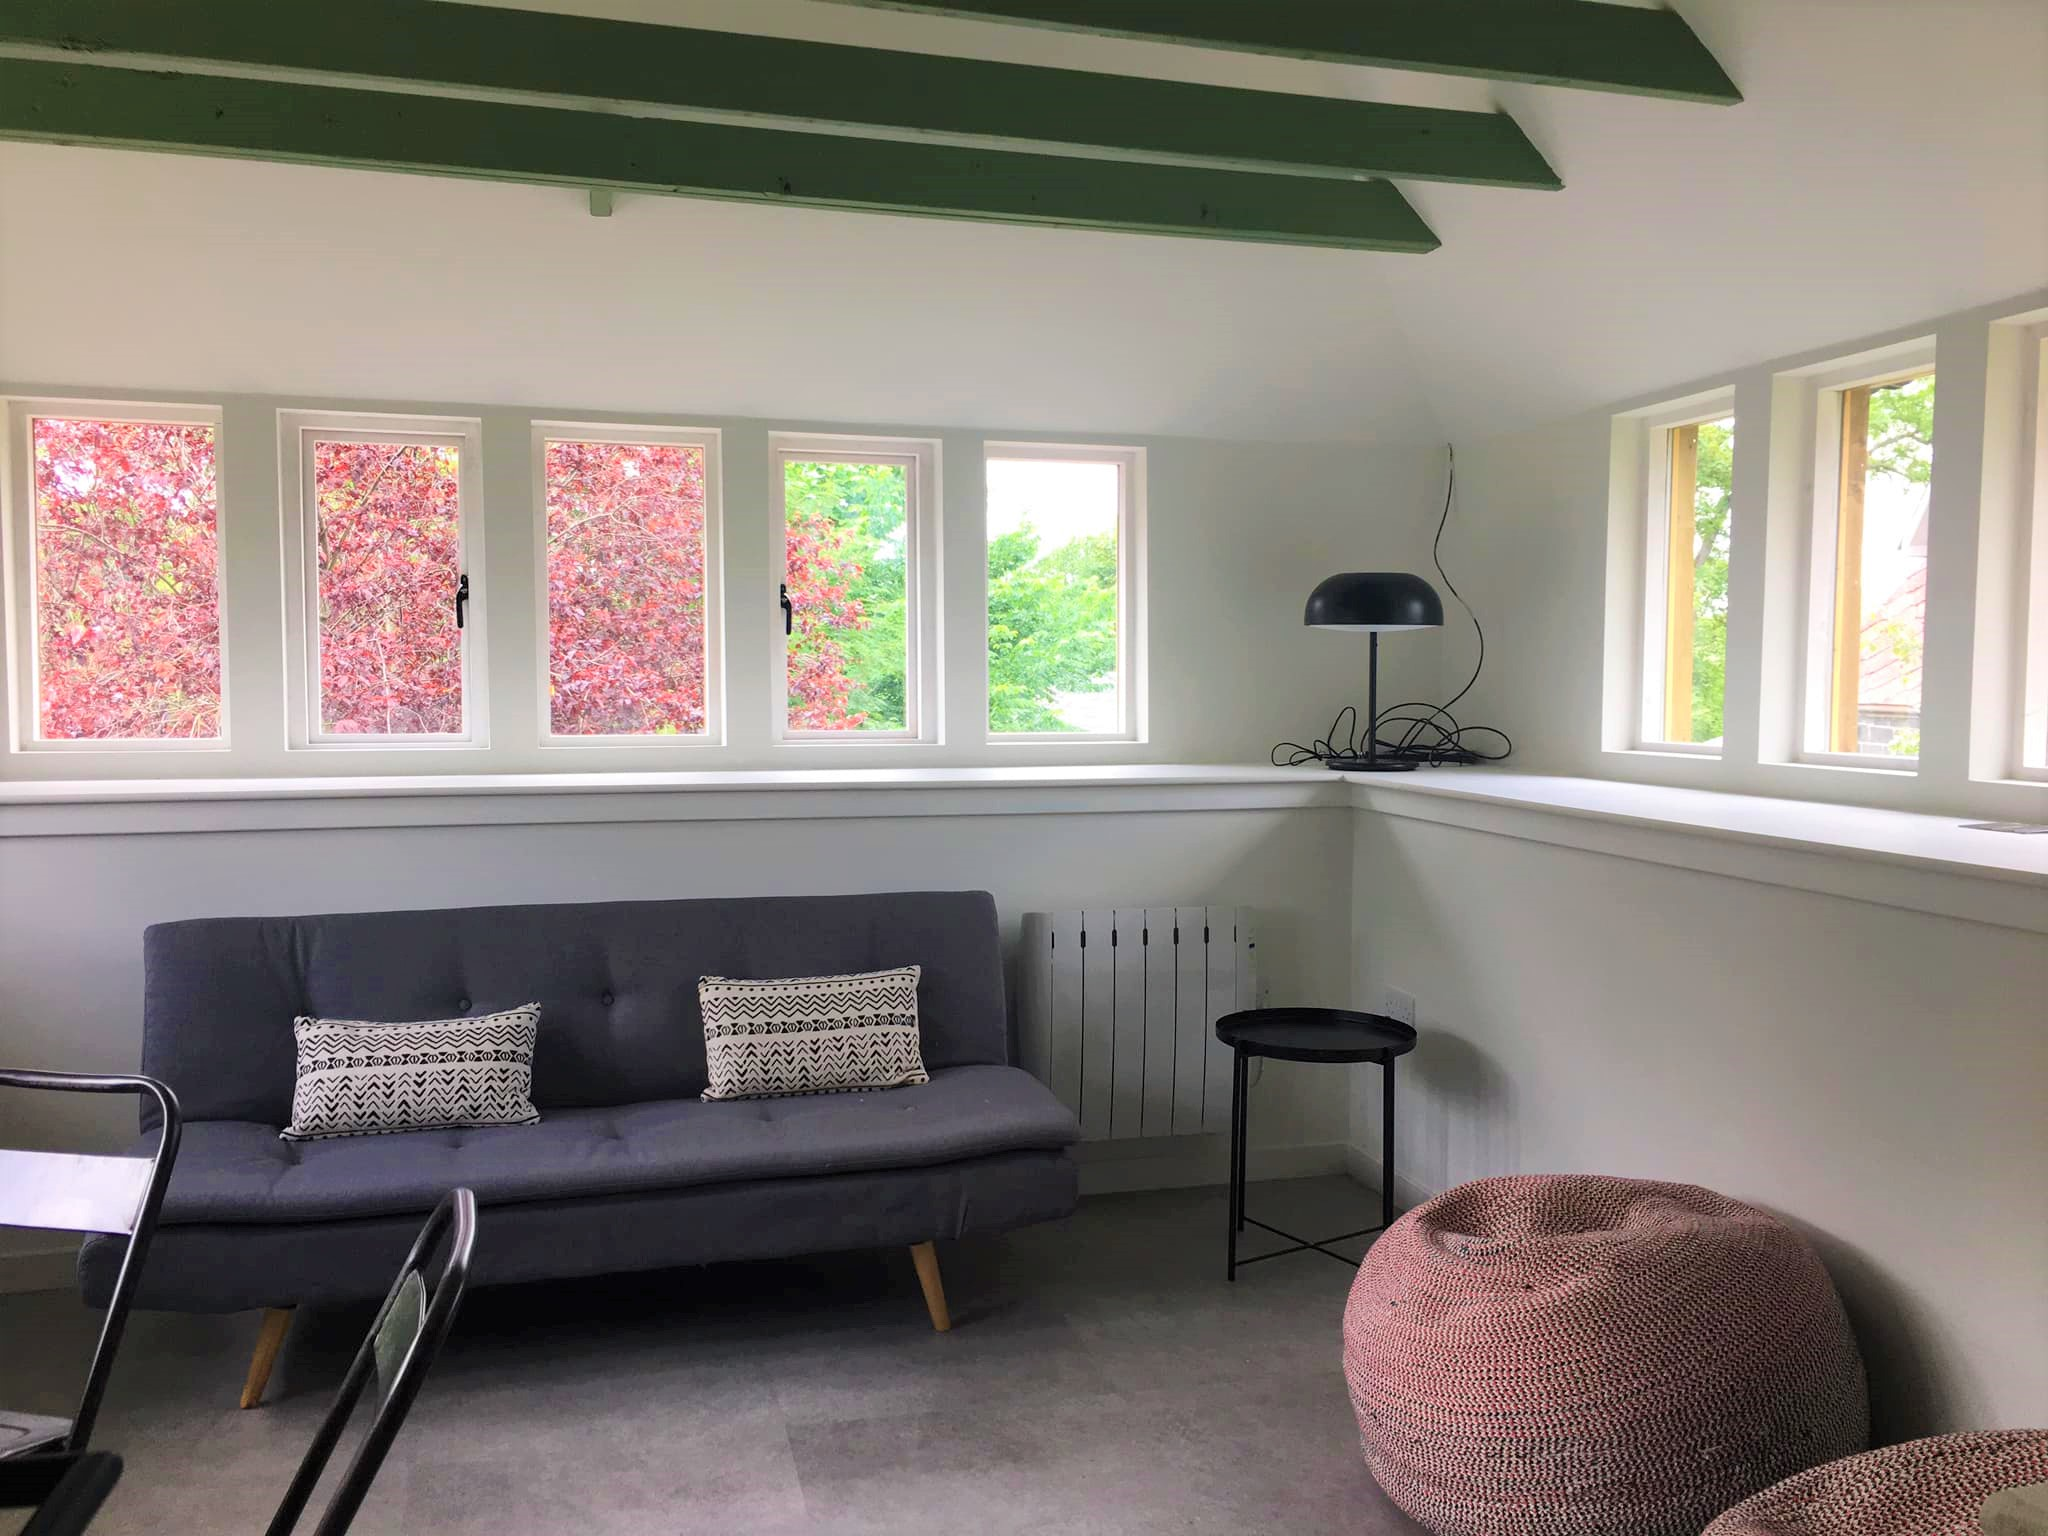 Kiln House is the chill-out and break space at our Yoga Retreats